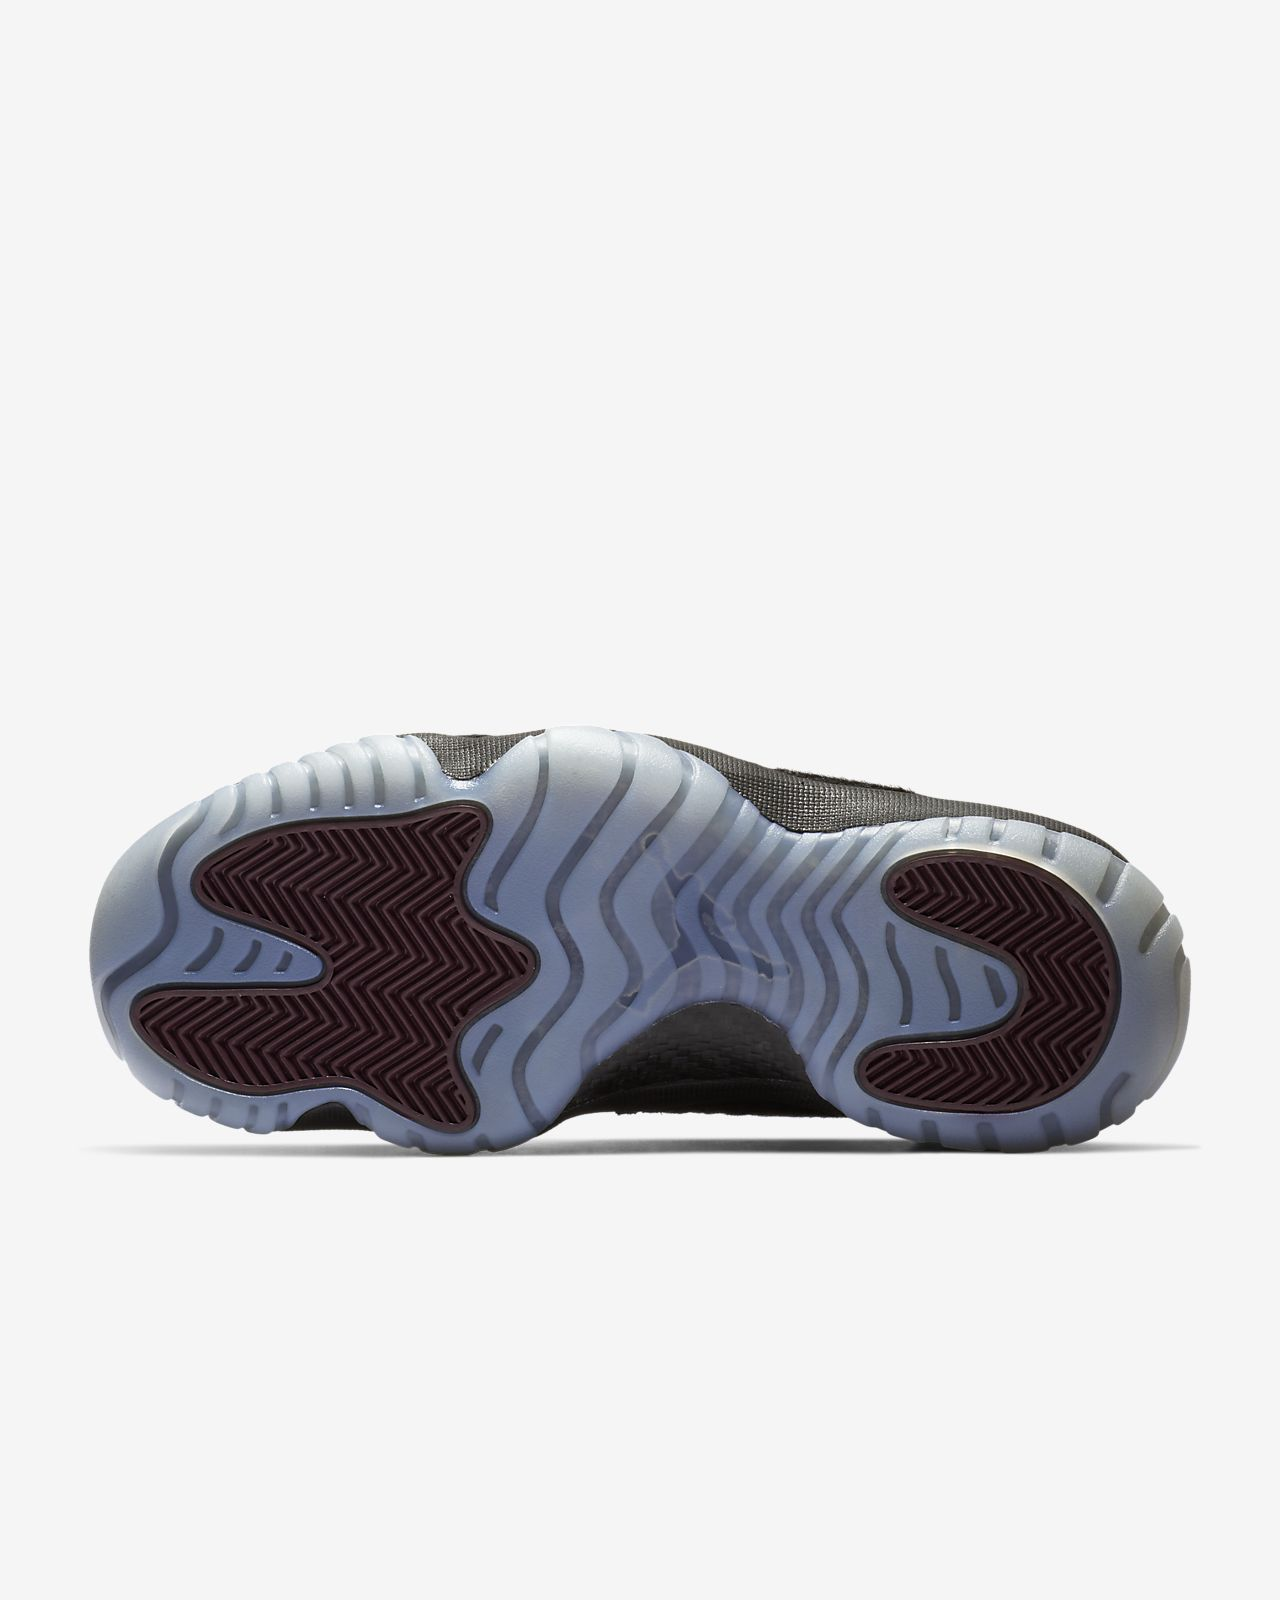 size 40 22f1c b9d39 Low Resolution Air Jordan Future Women s Shoe Air Jordan Future Women s Shoe